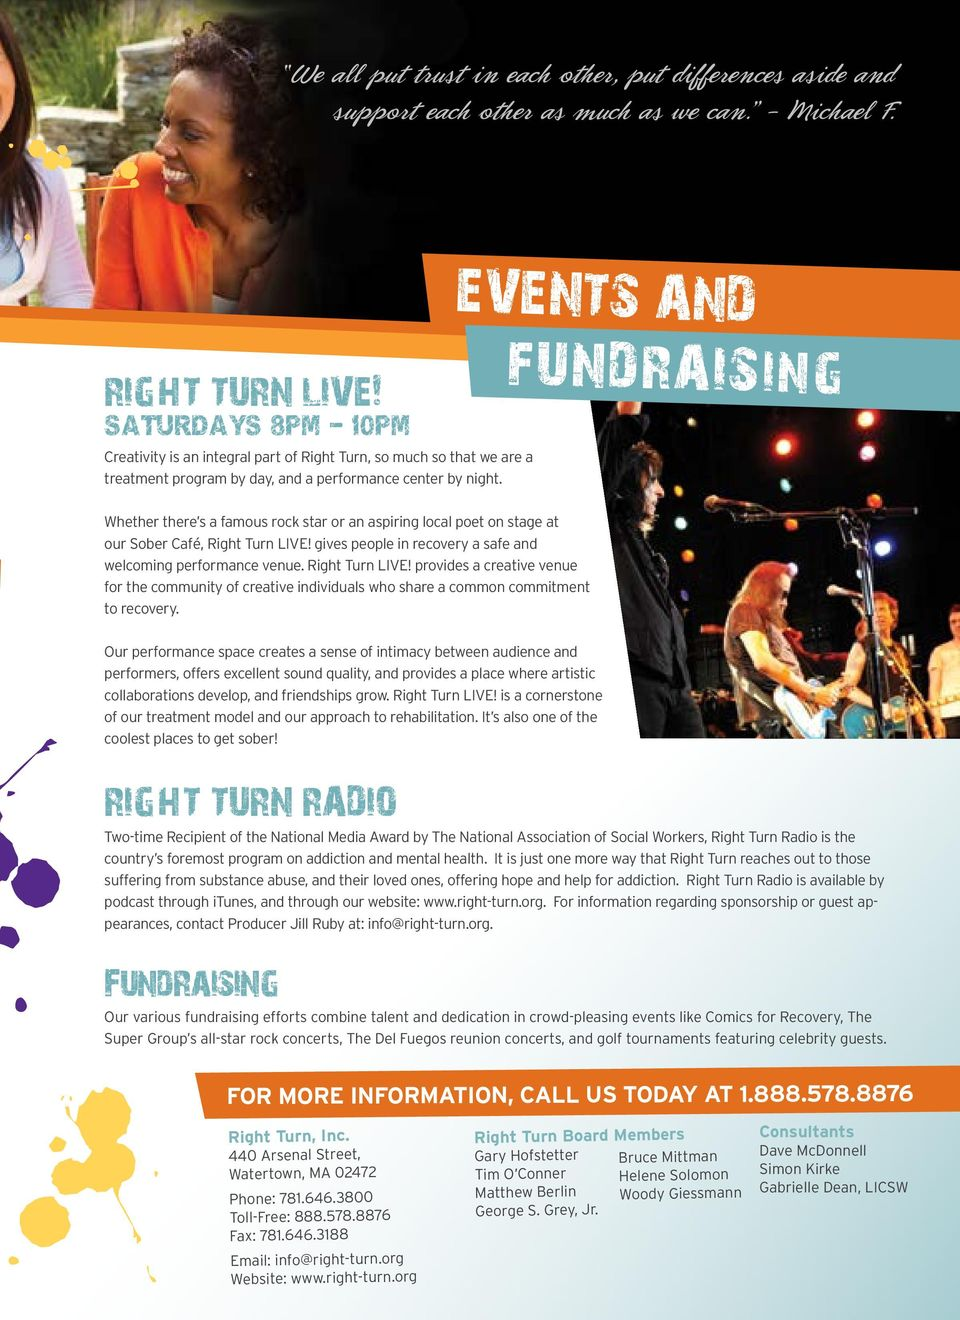 EVENTS AND FUNDRAISing Whether there s a famous rock star or an aspiring local poet on stage at our Sober Café, Right Turn LIVE! gives people in recovery a safe and welcoming performance venue.